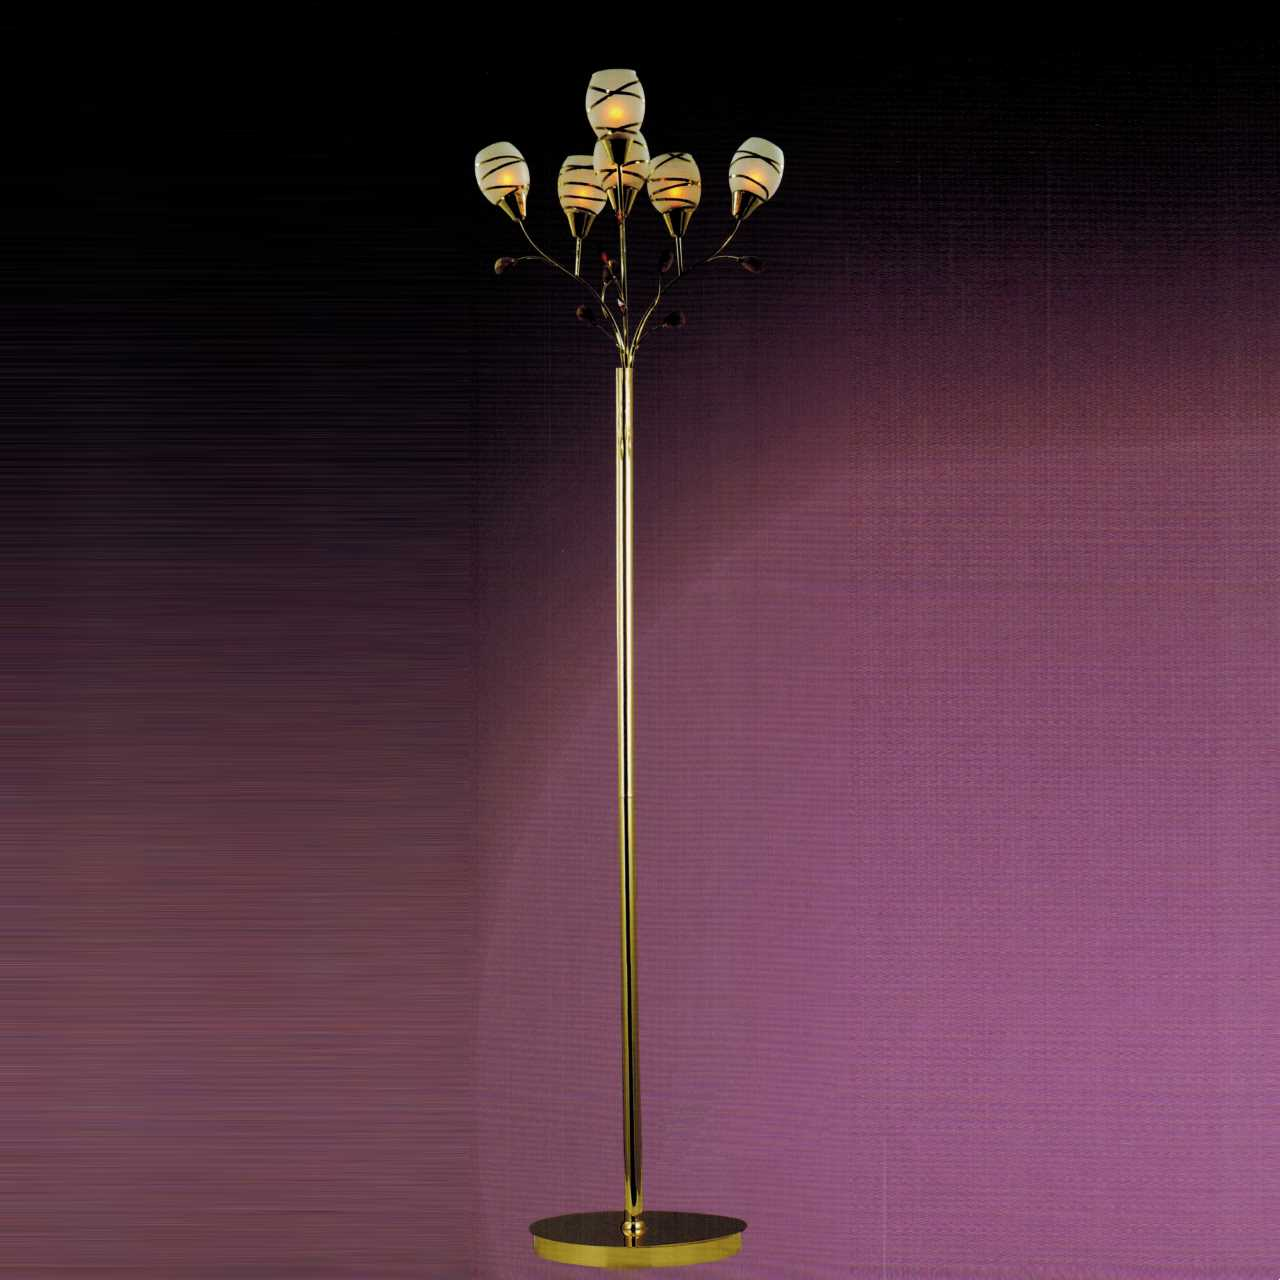 Brizzo Lighting Stores Two Due Linee Transitional Round Frosted Glass Floor Lamp With Clear